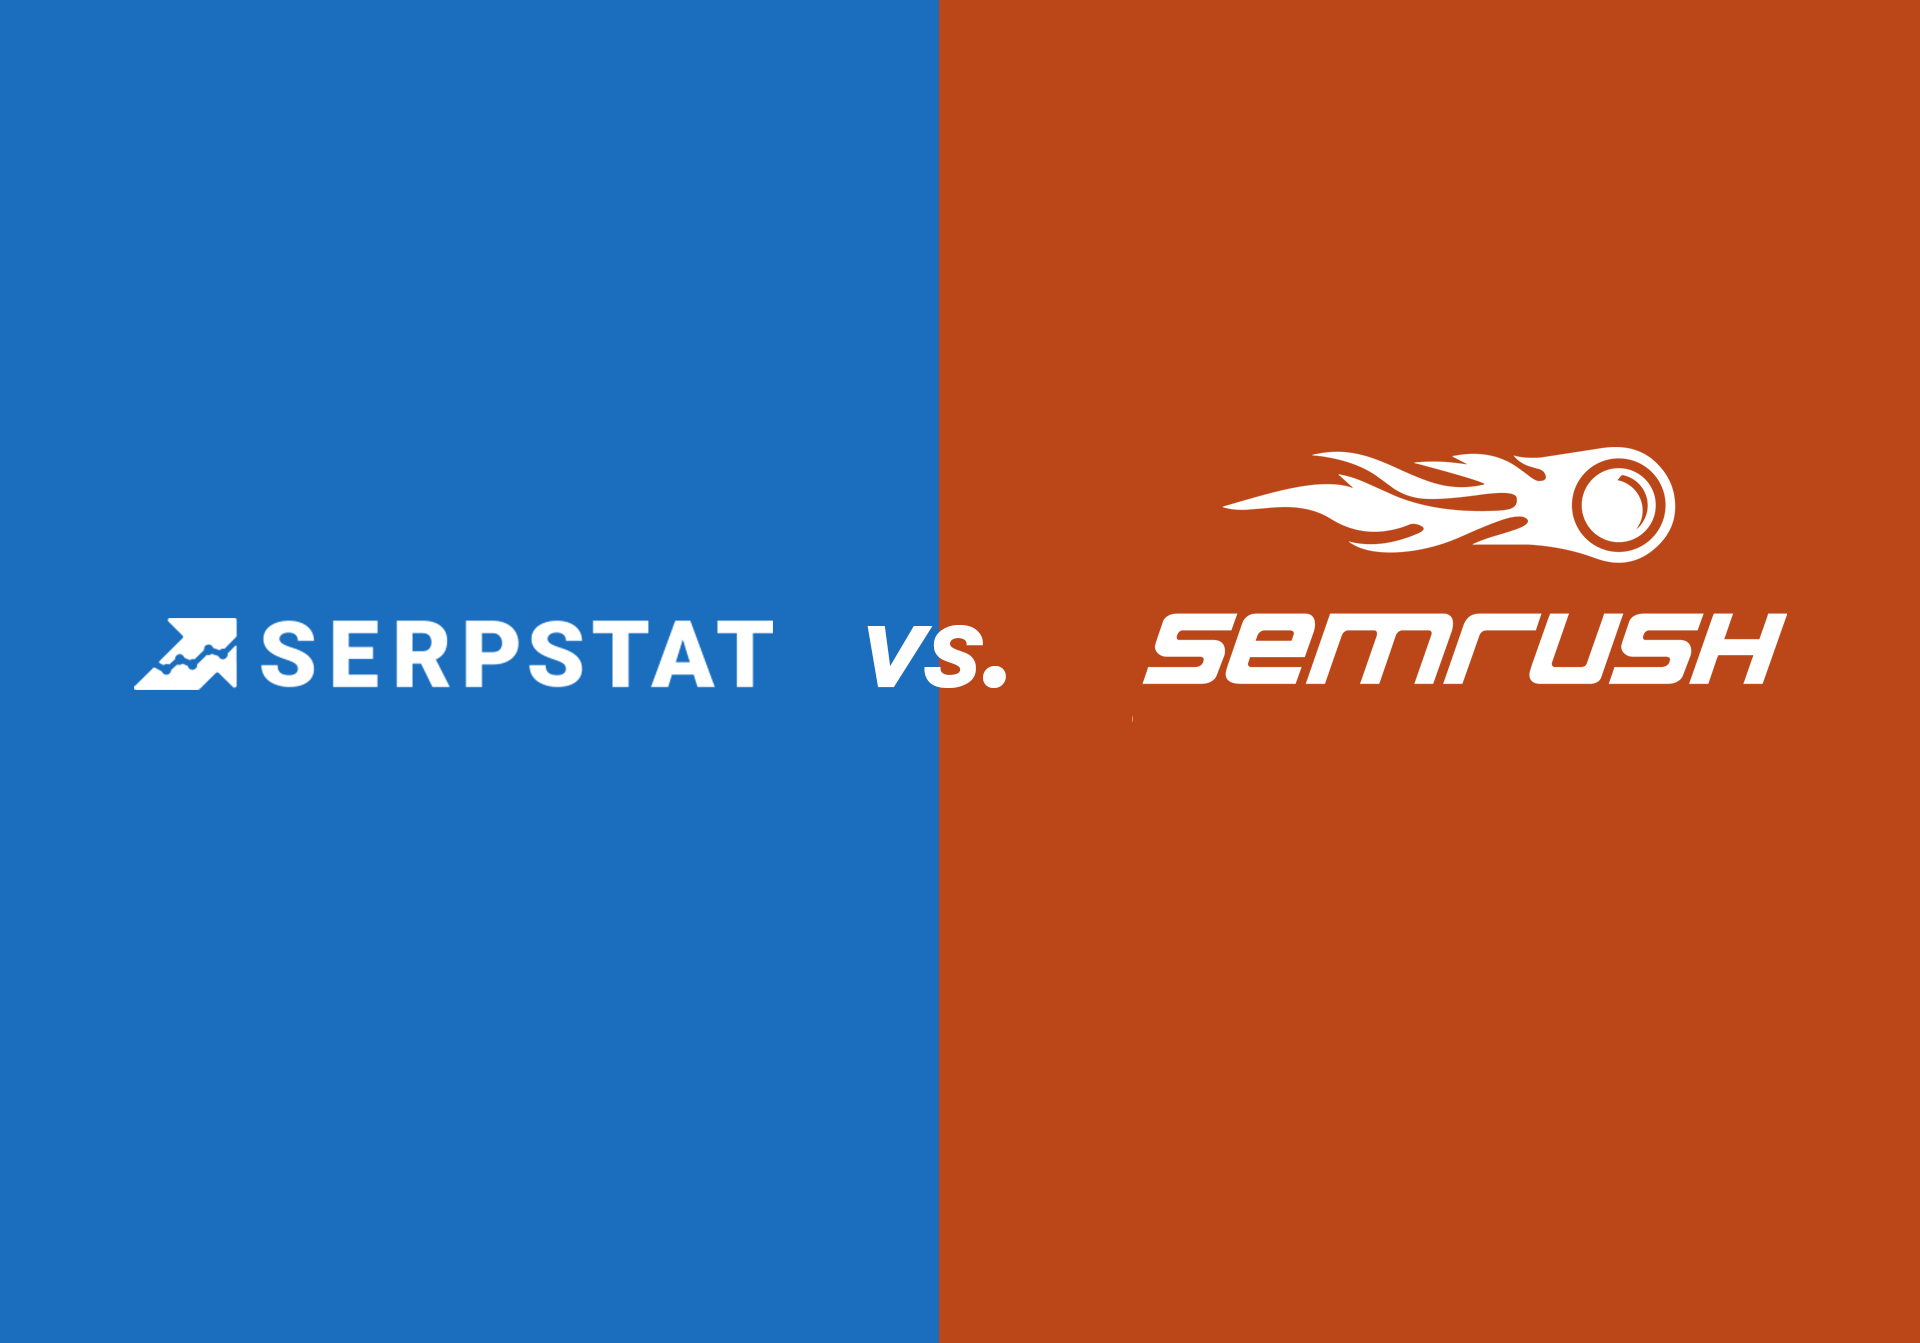 Seo Software Semrush Warranty Information